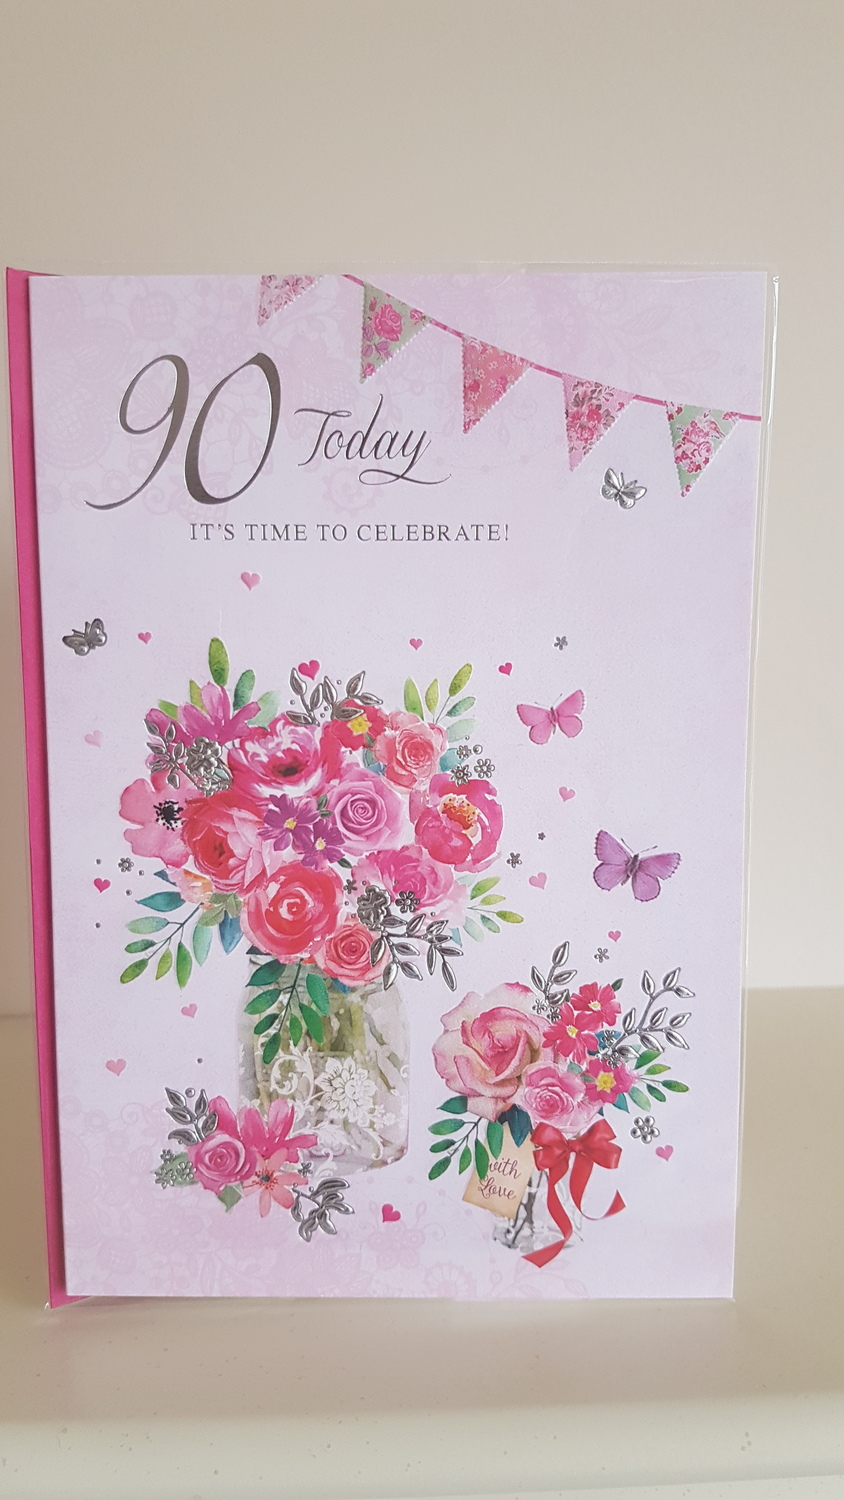 90th Birthday Bunches Of Flowers Pink Card Remember That Card